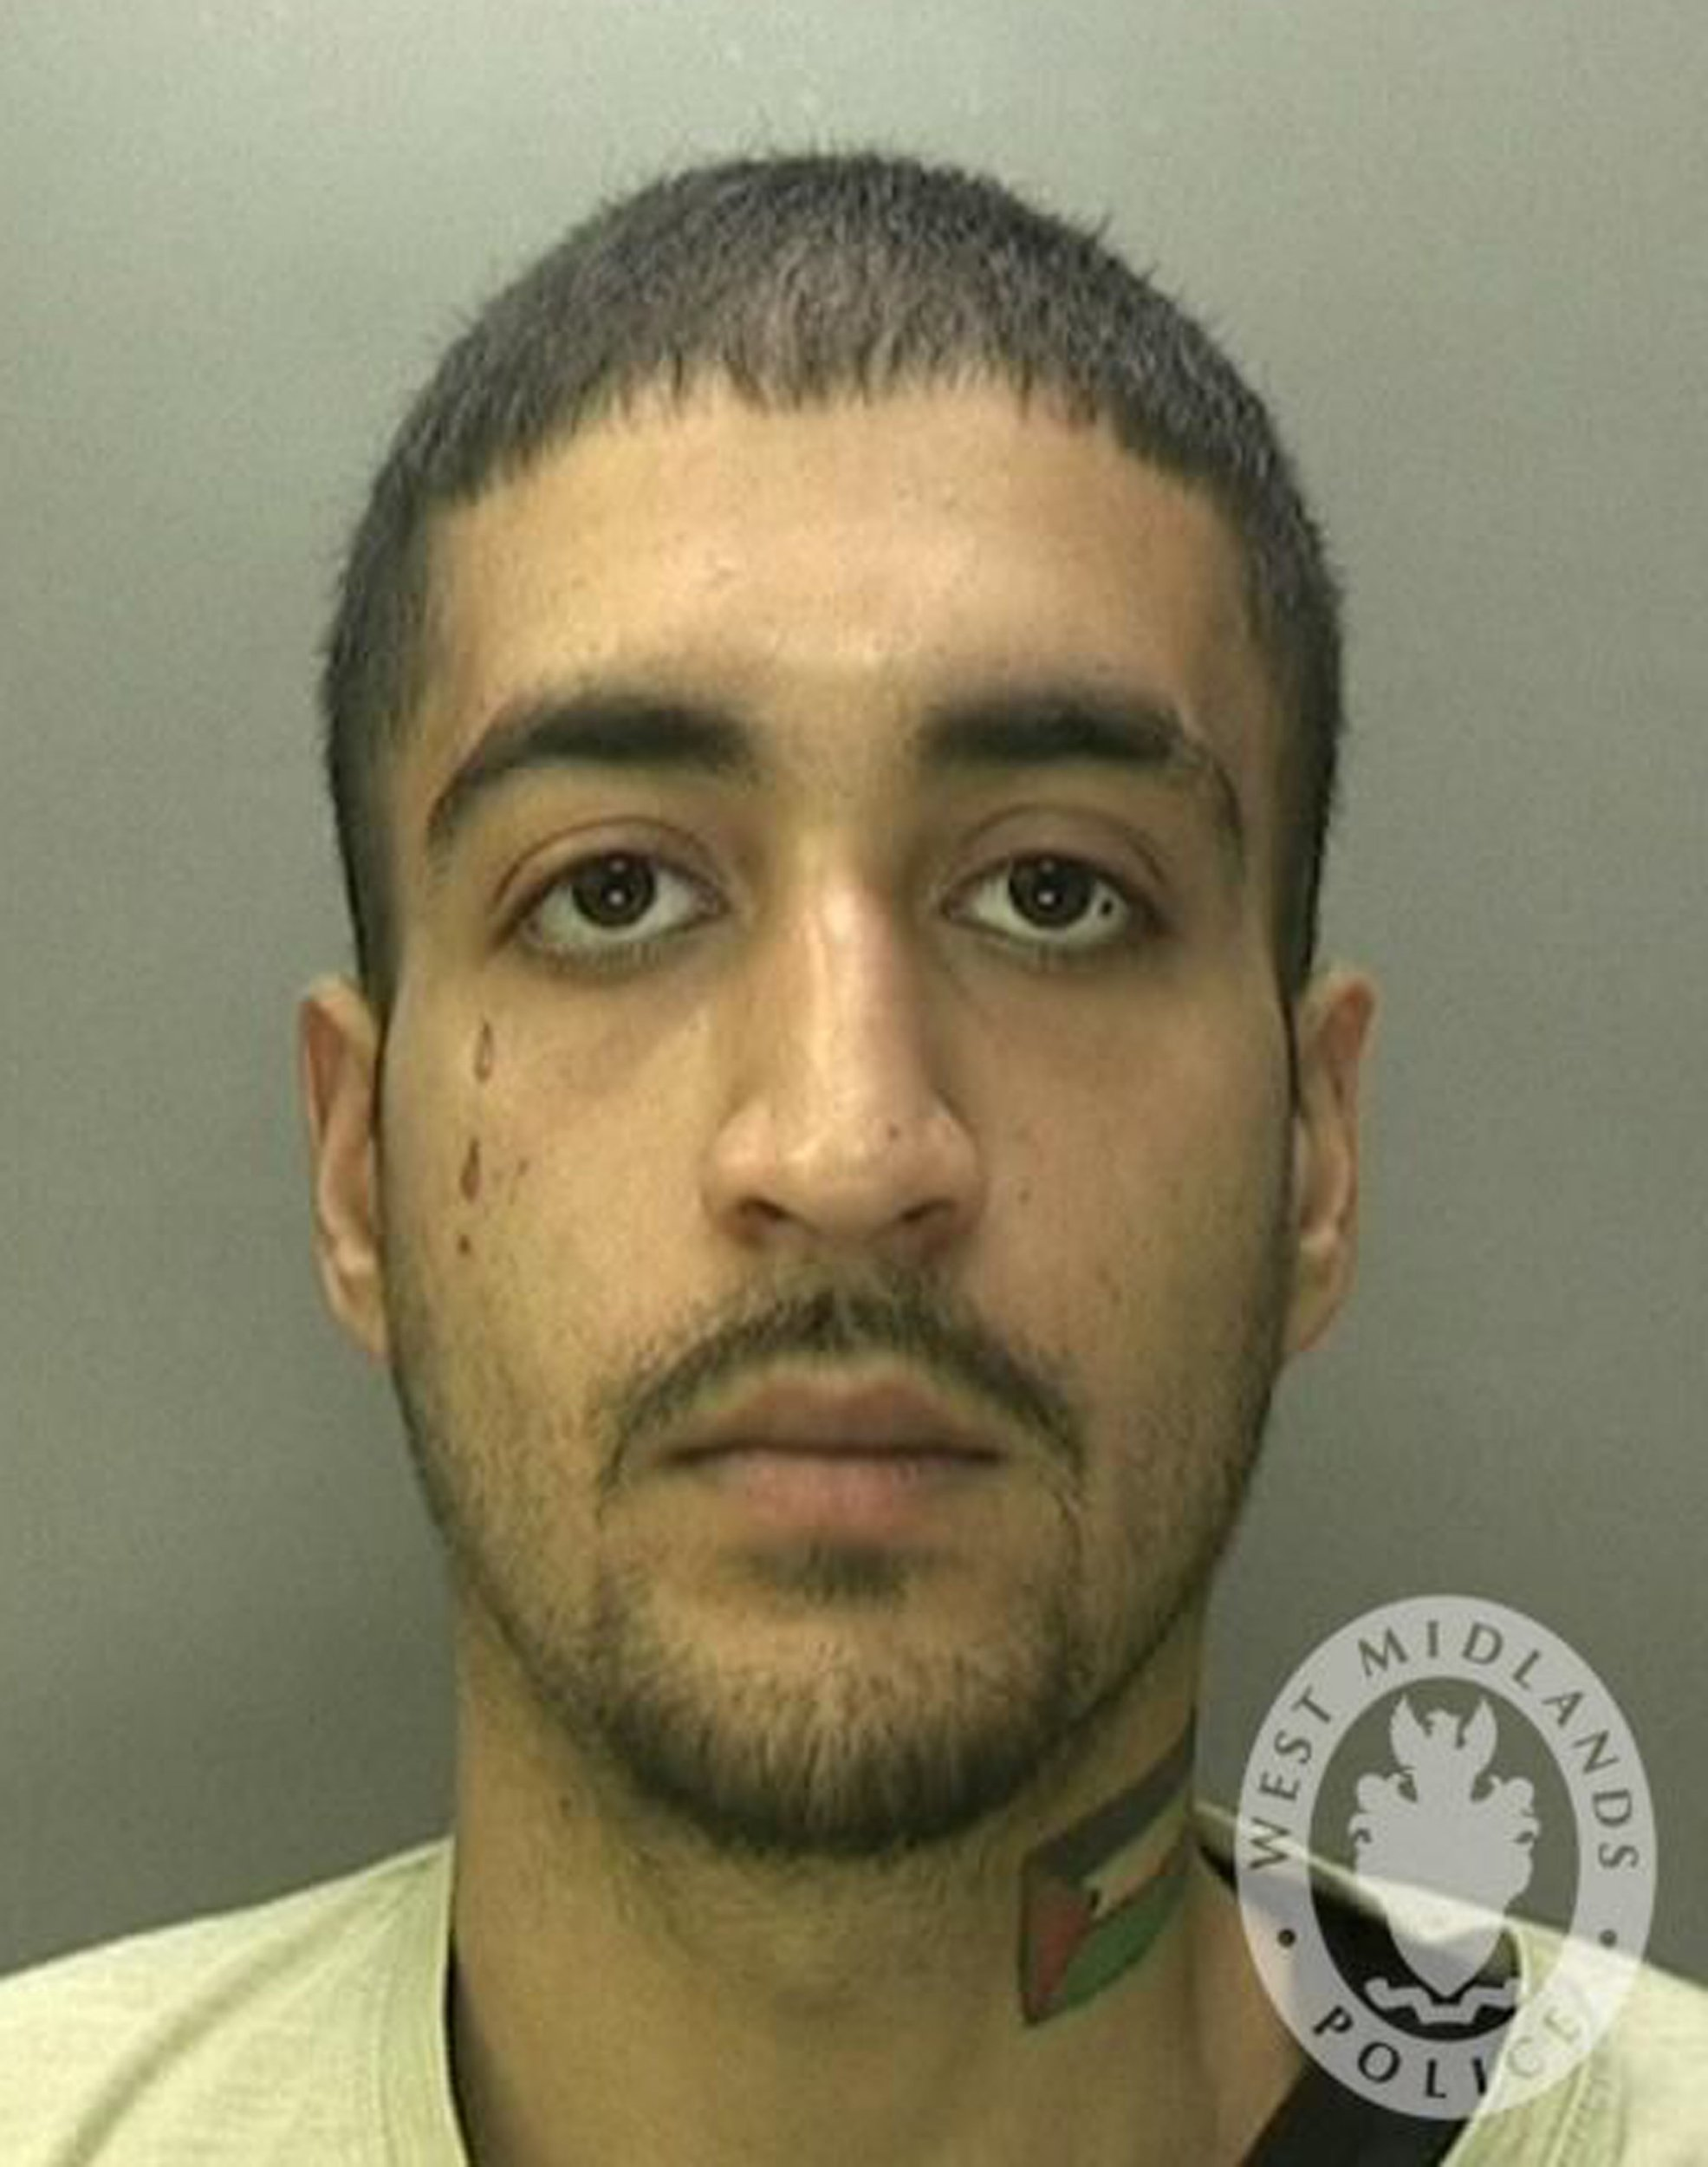 """Undated handout photo issued by West Midlands Police of Kasim Khuram, of Kenilworth Road, Aston, Birmingham, who has been jailed for six years for the """"despicable"""" crime of breaking into a funeral parlour and having sex with a corpse. PRESS ASSOCIATION Photo. Issue date: Friday February 1, 2019. The court heard during a break in, Khuram had carried out a ?gratuitous? crime by disturbing three bodies and a total of nine coffins. See PA story COURTS Body. Photo credit should read: West Midlands Police/PA Wire NOTE TO EDITORS: This handout photo may only be used in for editorial reporting purposes for the contemporaneous illustration of events, things or the people in the image or facts mentioned in the caption. Reuse of the picture may require further permission from the copyright holder. BUL1413"""